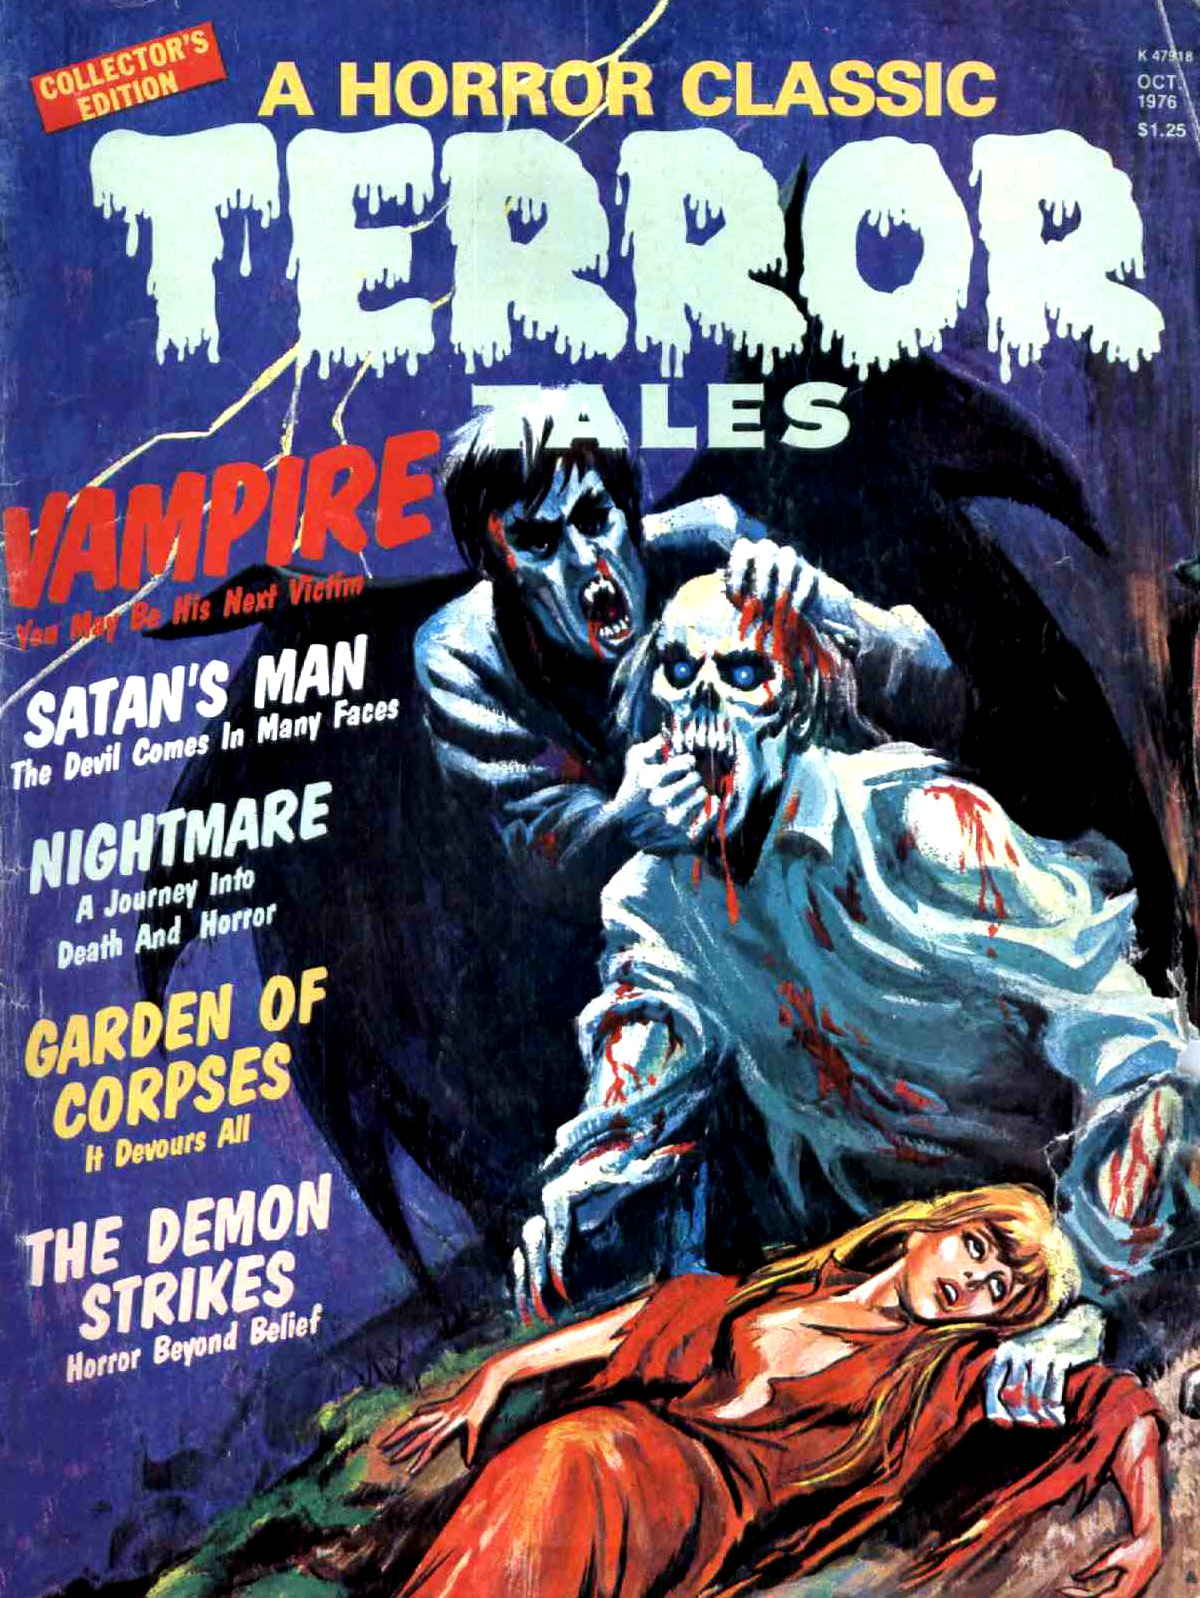 Terror Tales Vol. 07 #4 (Eerie Publications, 1976)